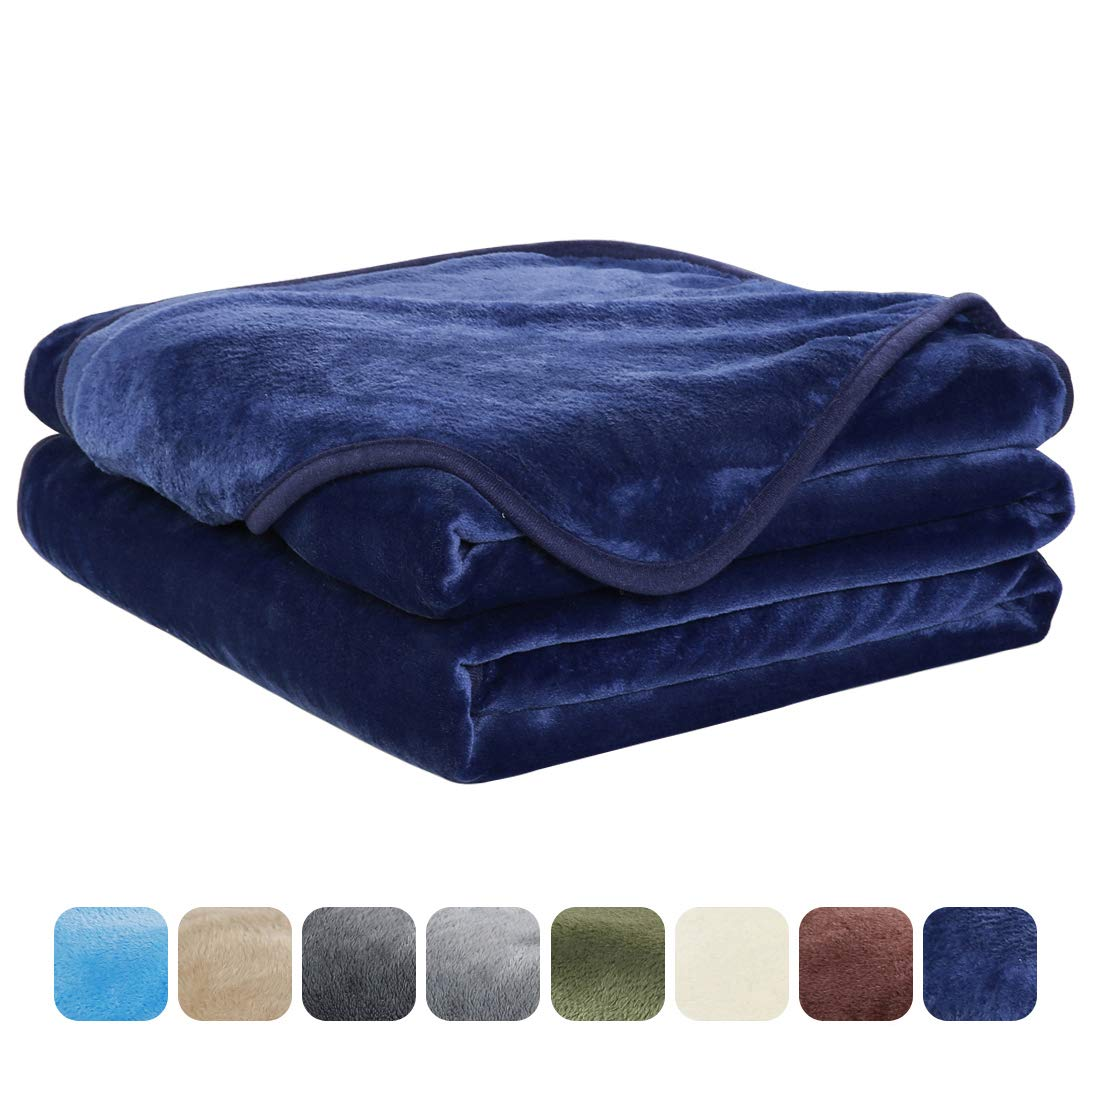 EASELAND Soft Twin Size Blanket All Season Warm Fuzzy Microplush Lightweight Thermal Fleece Blankets for Couch Bed Sofa,66x90 Inches,Dark Blue